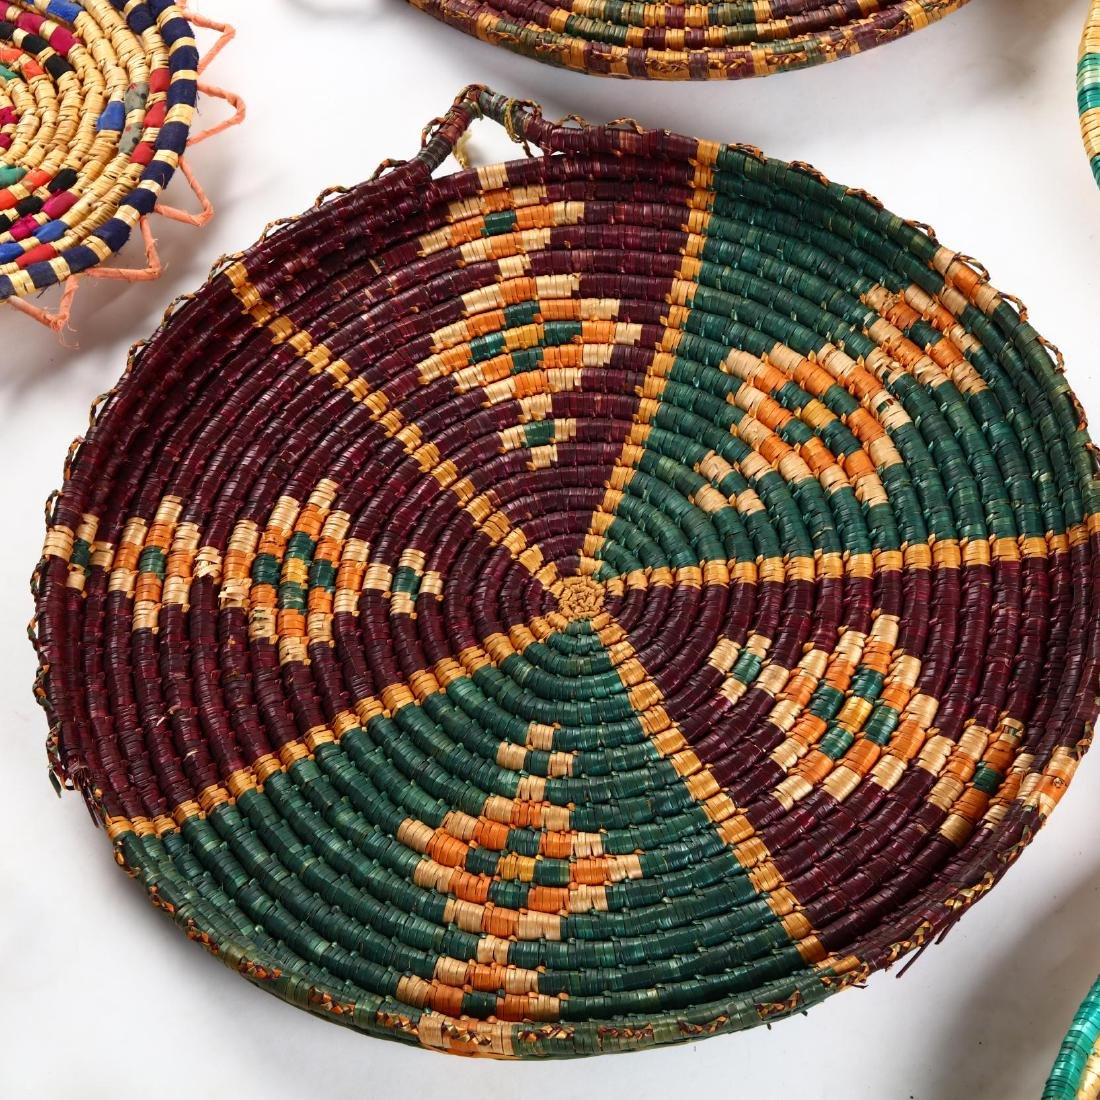 Group of Decorative Cypriot Serving Baskets - 4